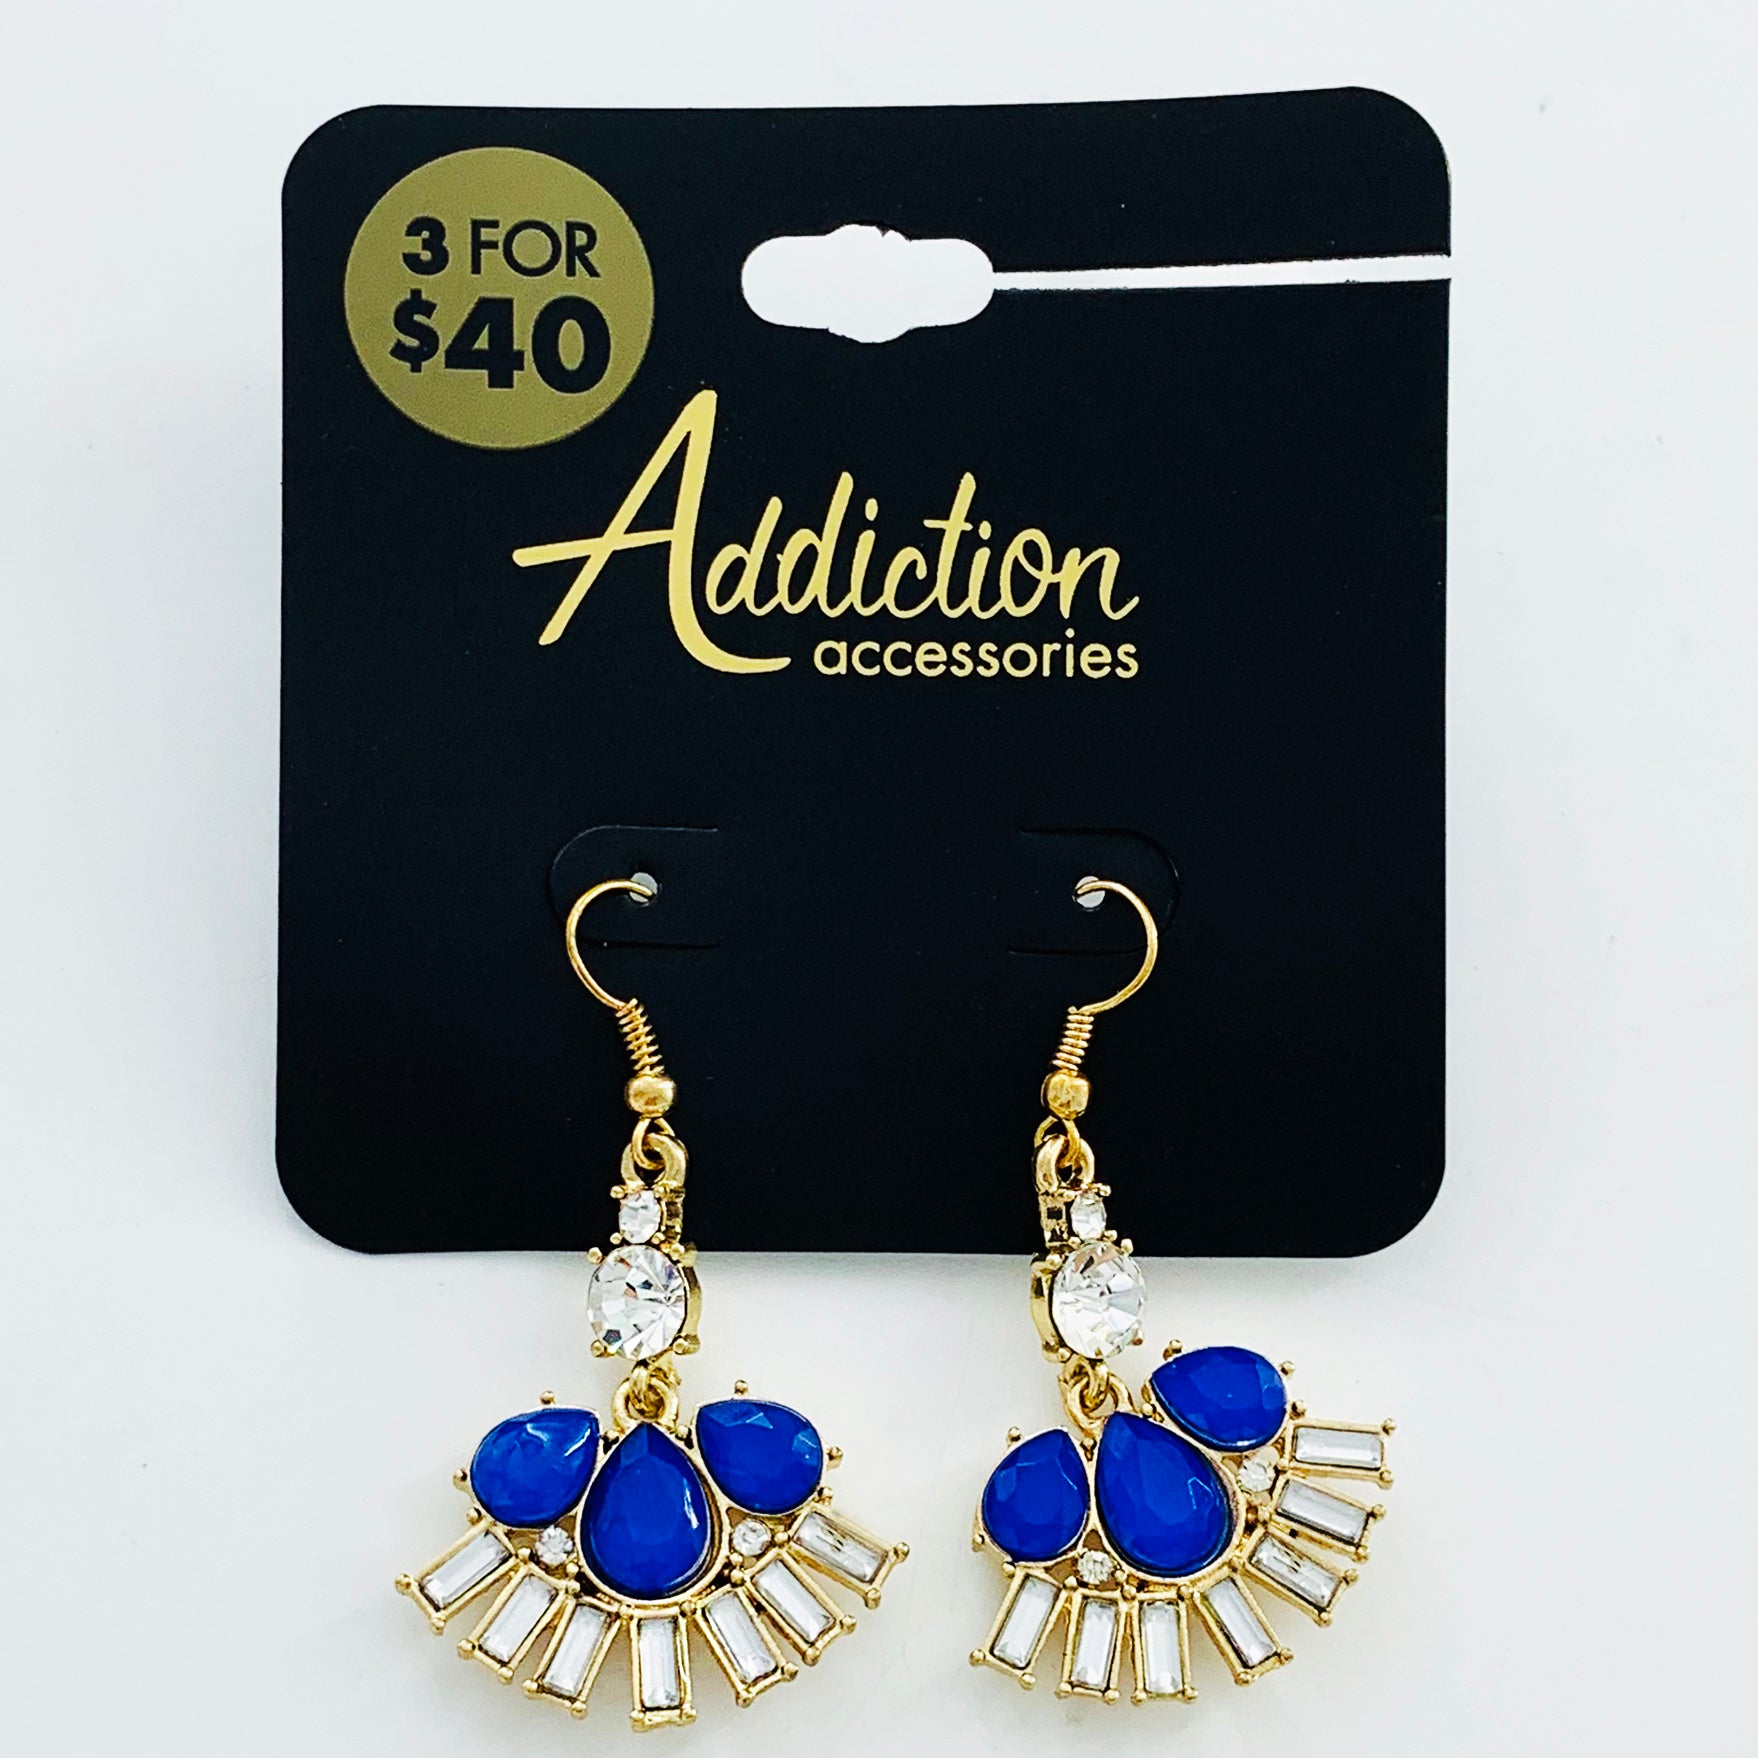 Art-deco inspired blue earrings with baguette stones